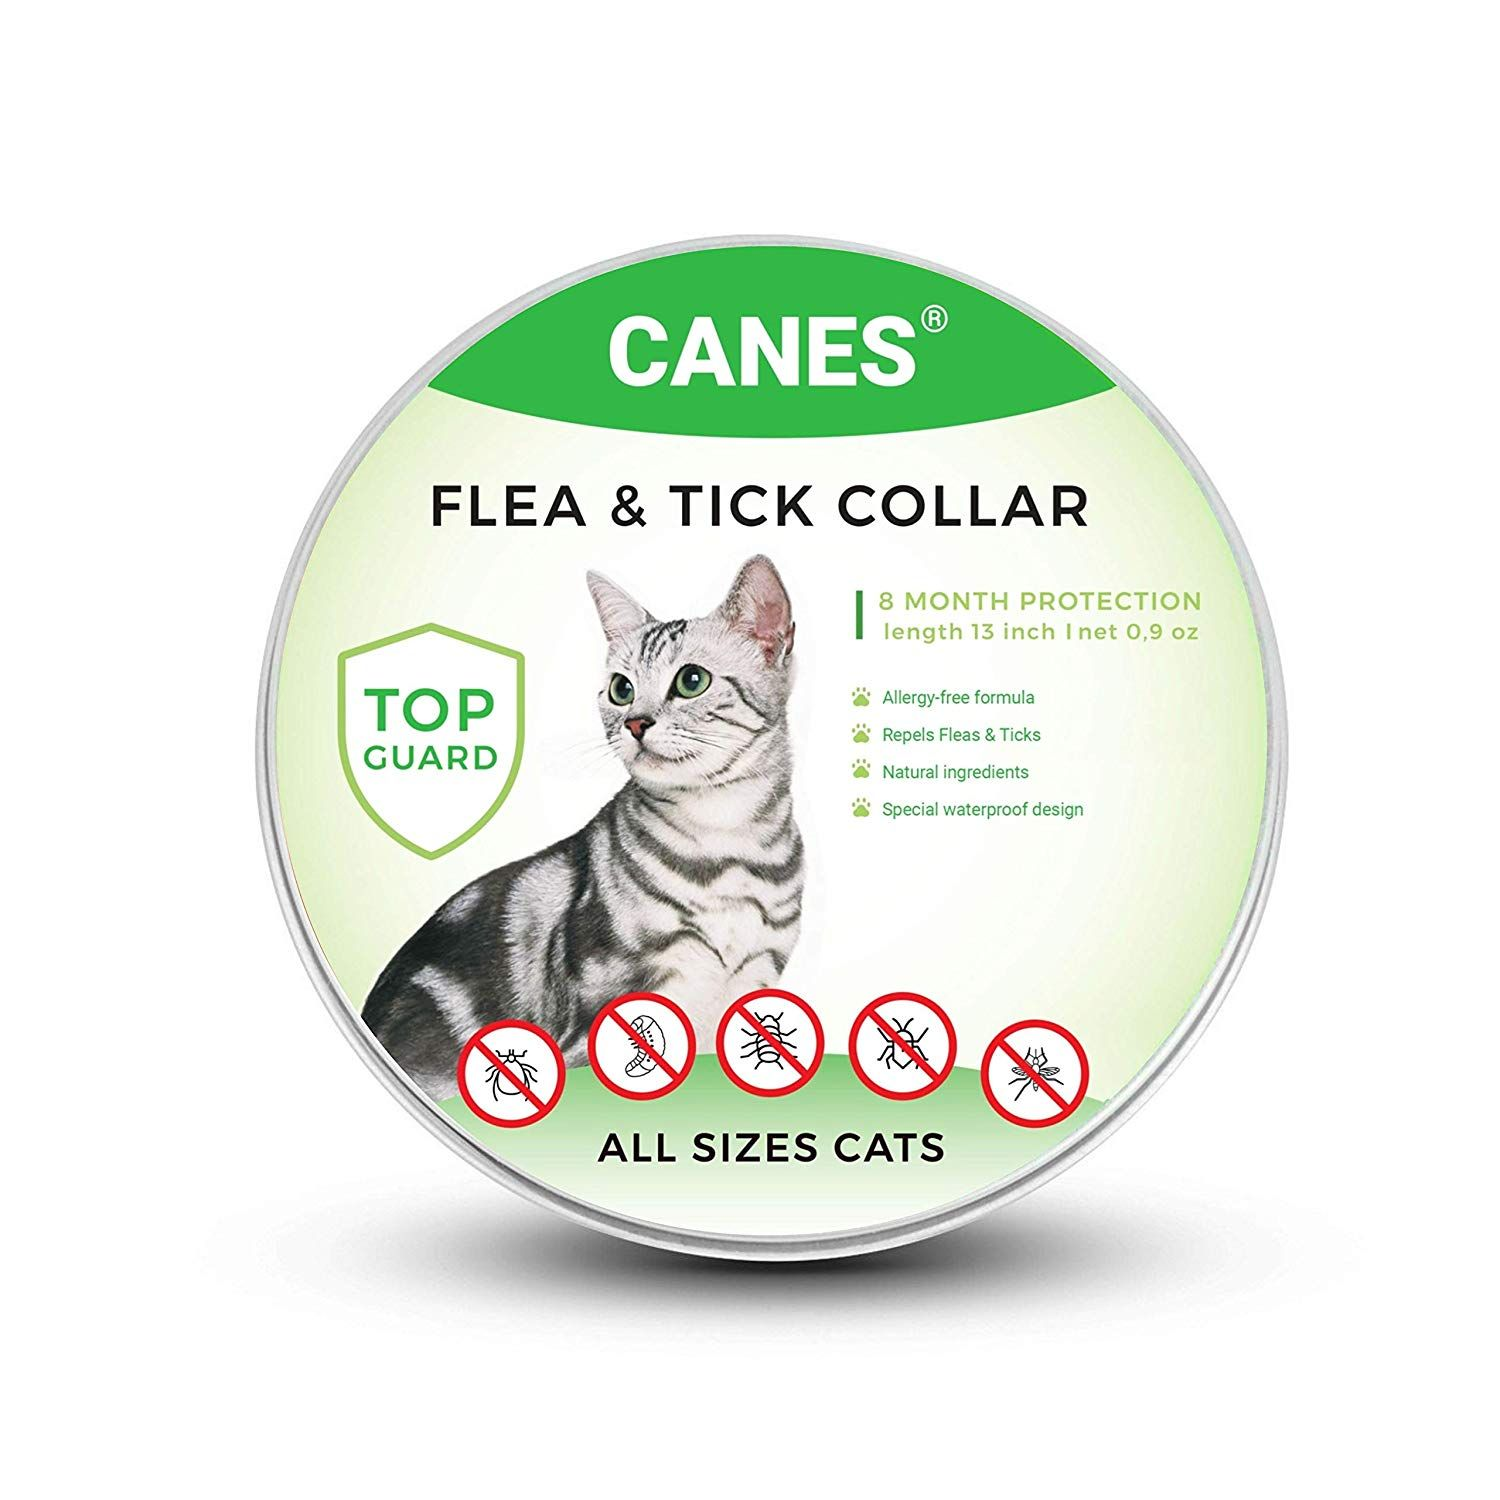 Vectra For Cats And Kittens Under 9 Lbs 3 Dose By Unknown Find Out More Details By Clicking The Image This Is An Cats And Kittens Cat Fleas Cat Flea Remedy